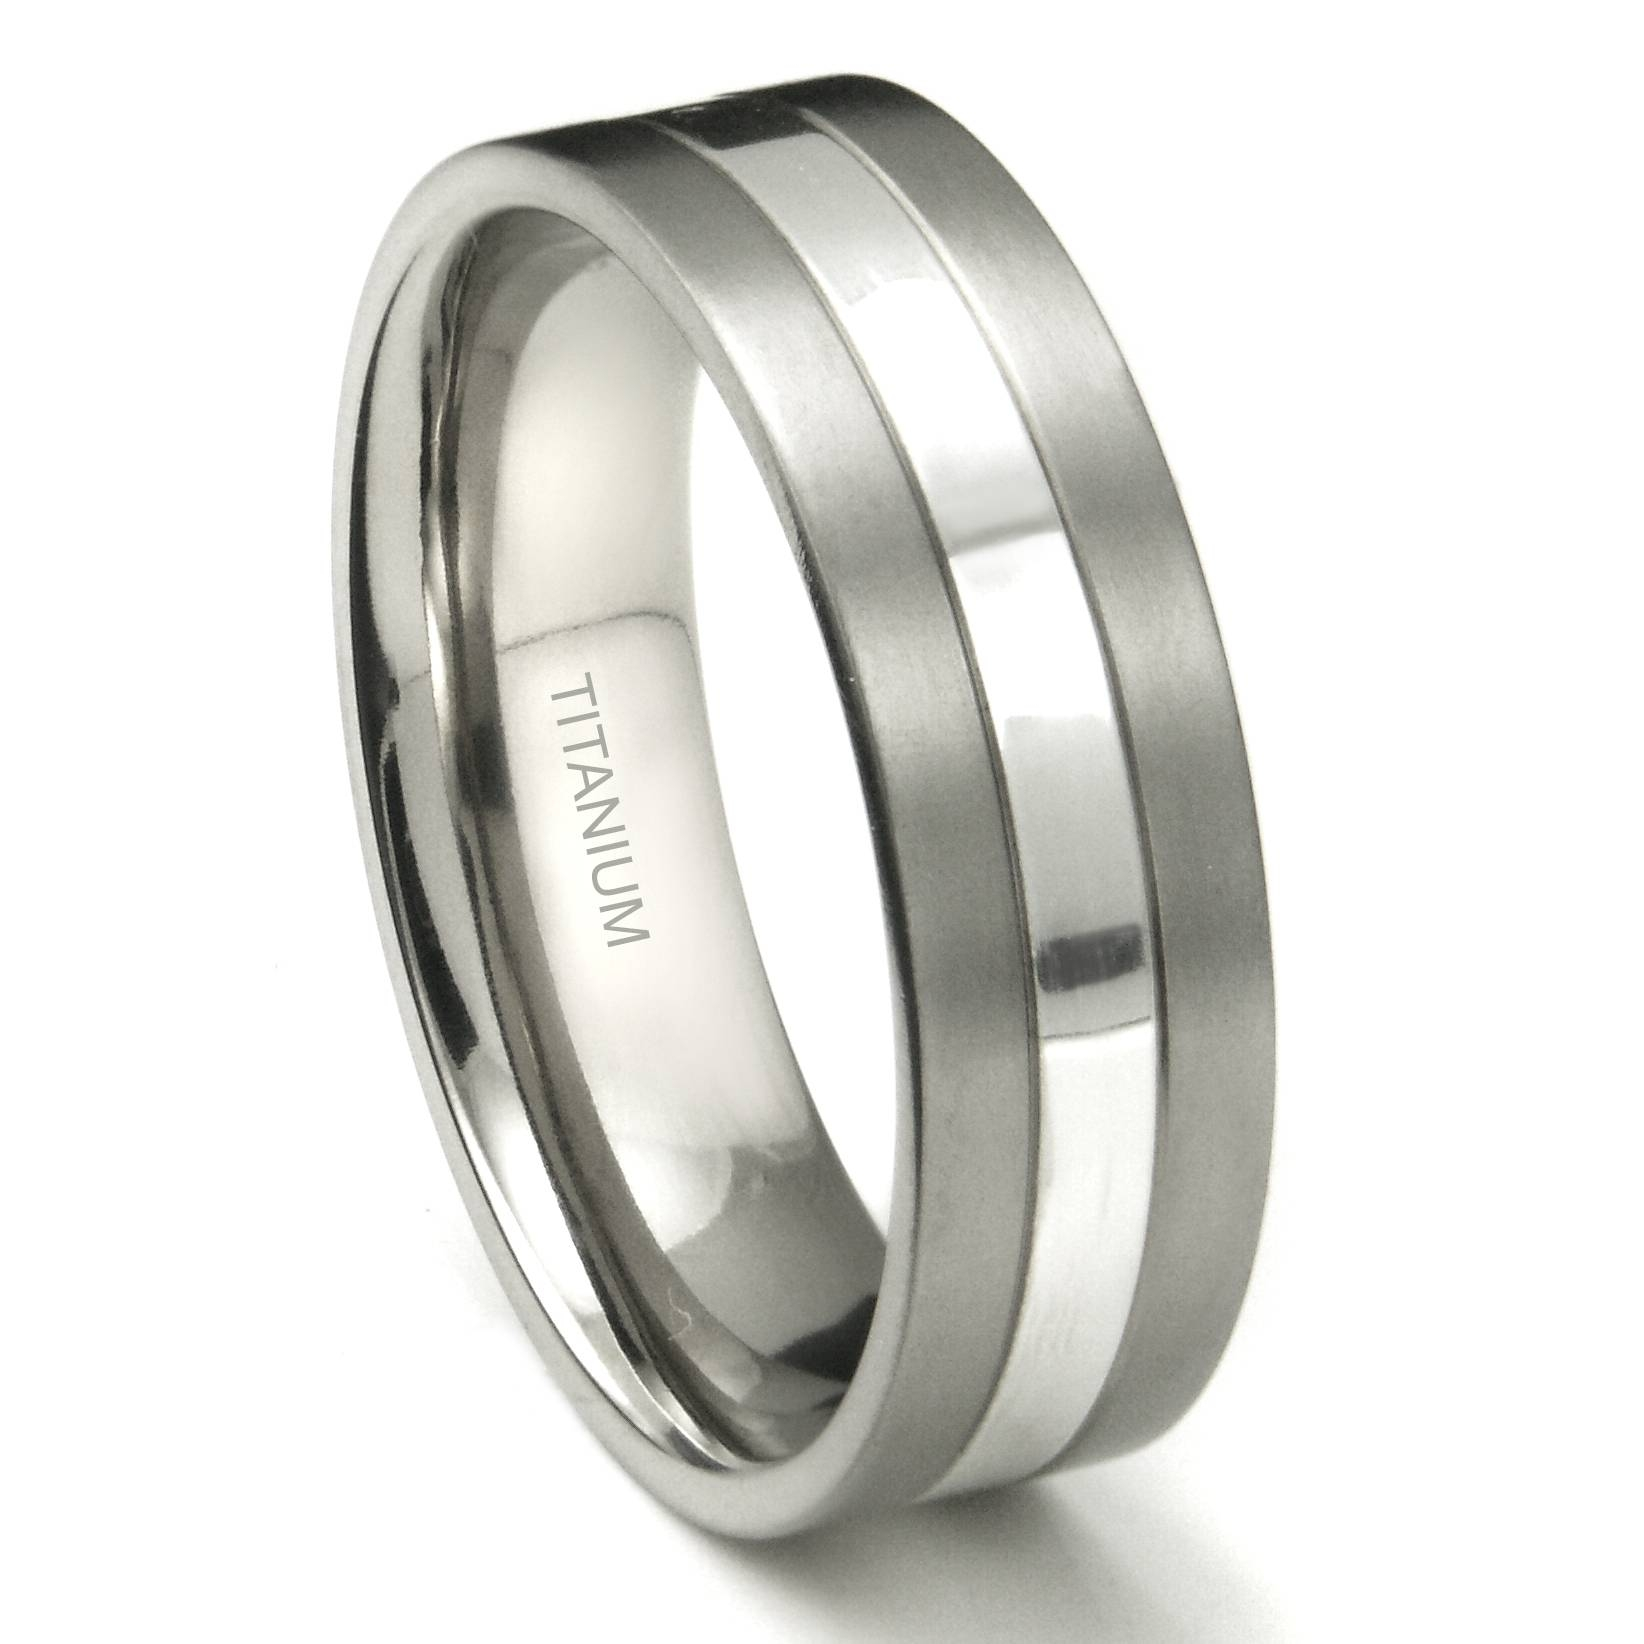 Titanium 7Mm Two Tone Wedding Ring Throughout Titanium Wedding Bands For Men (View 10 of 15)